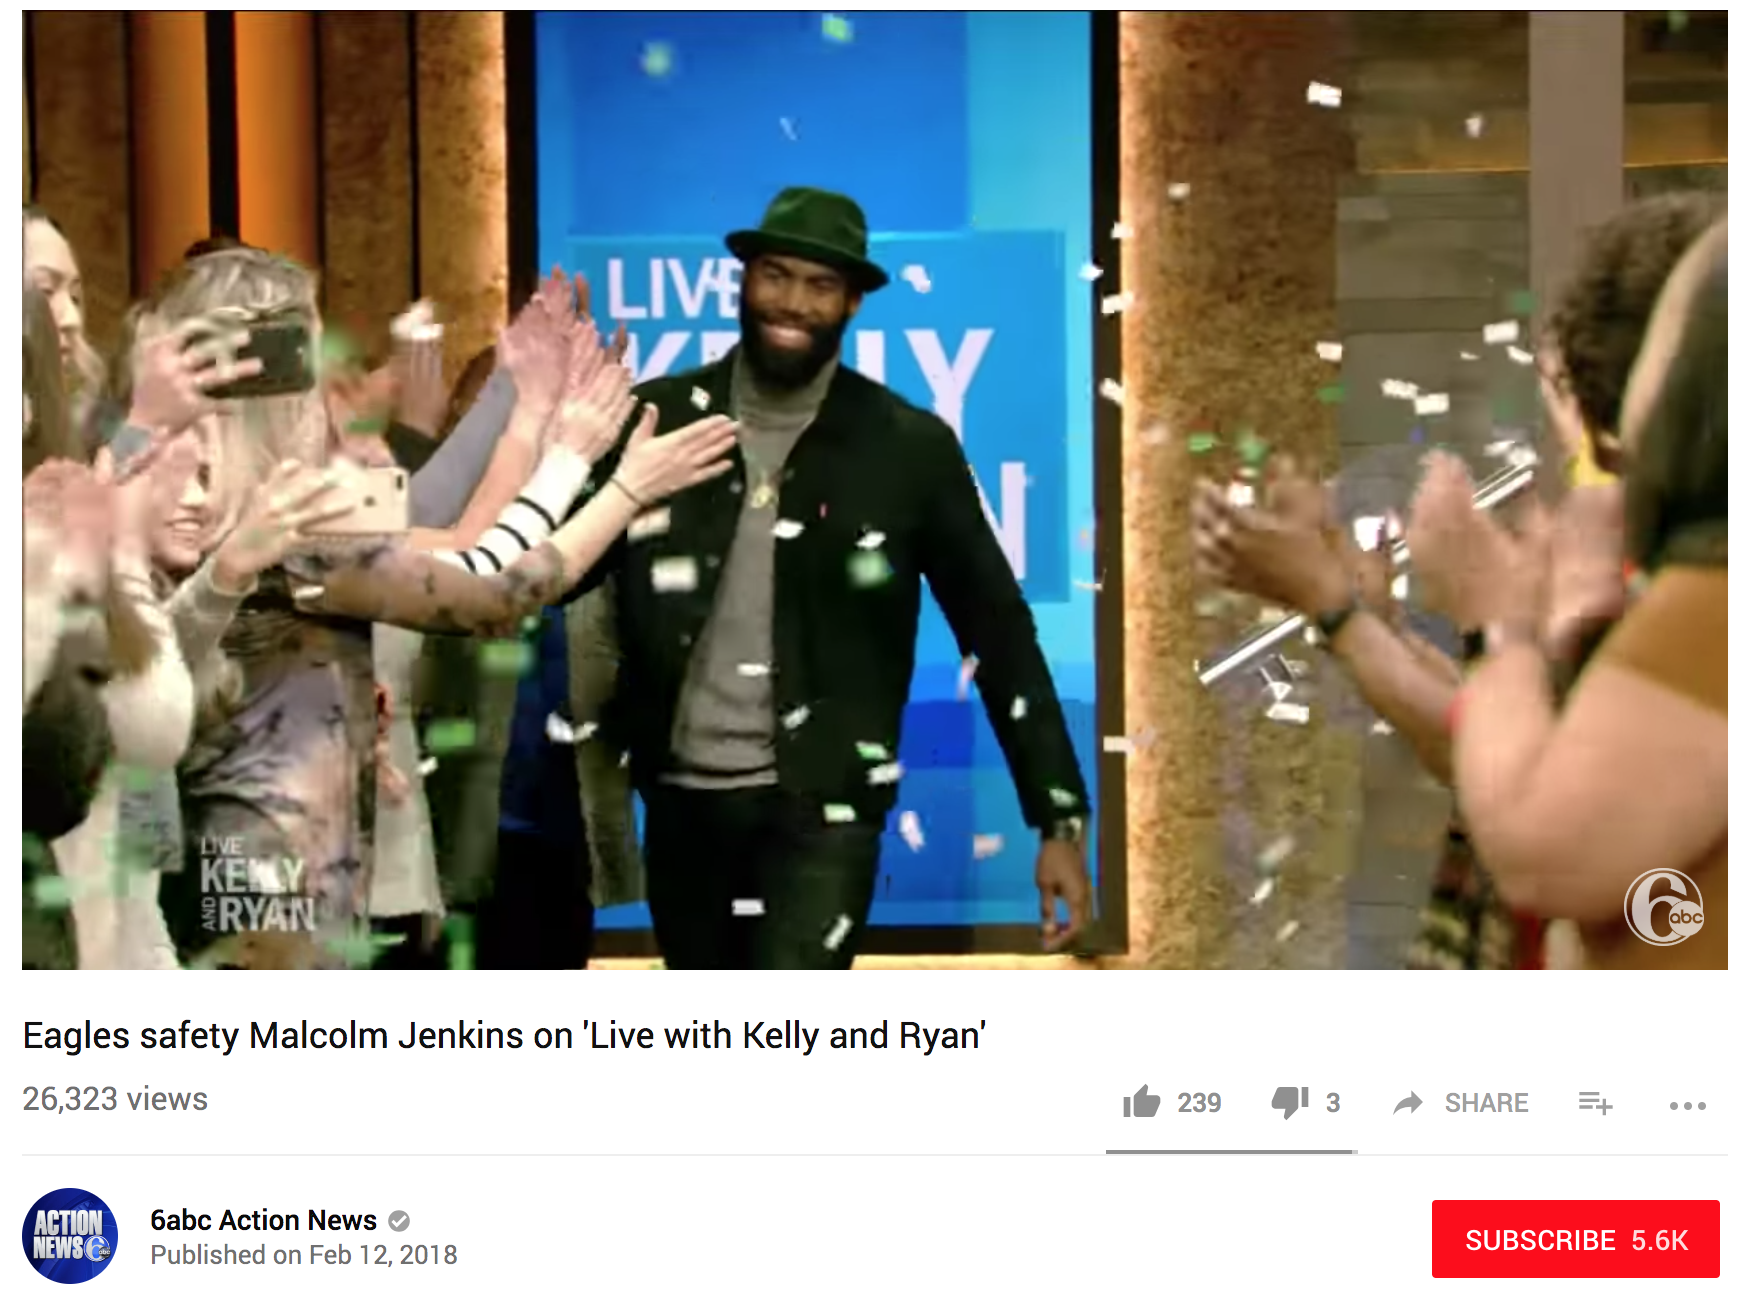 Live with Kelly and Ryan - Malcolm Jenkins on 'Live with Kelly and Ryan' on February 12, 2018.